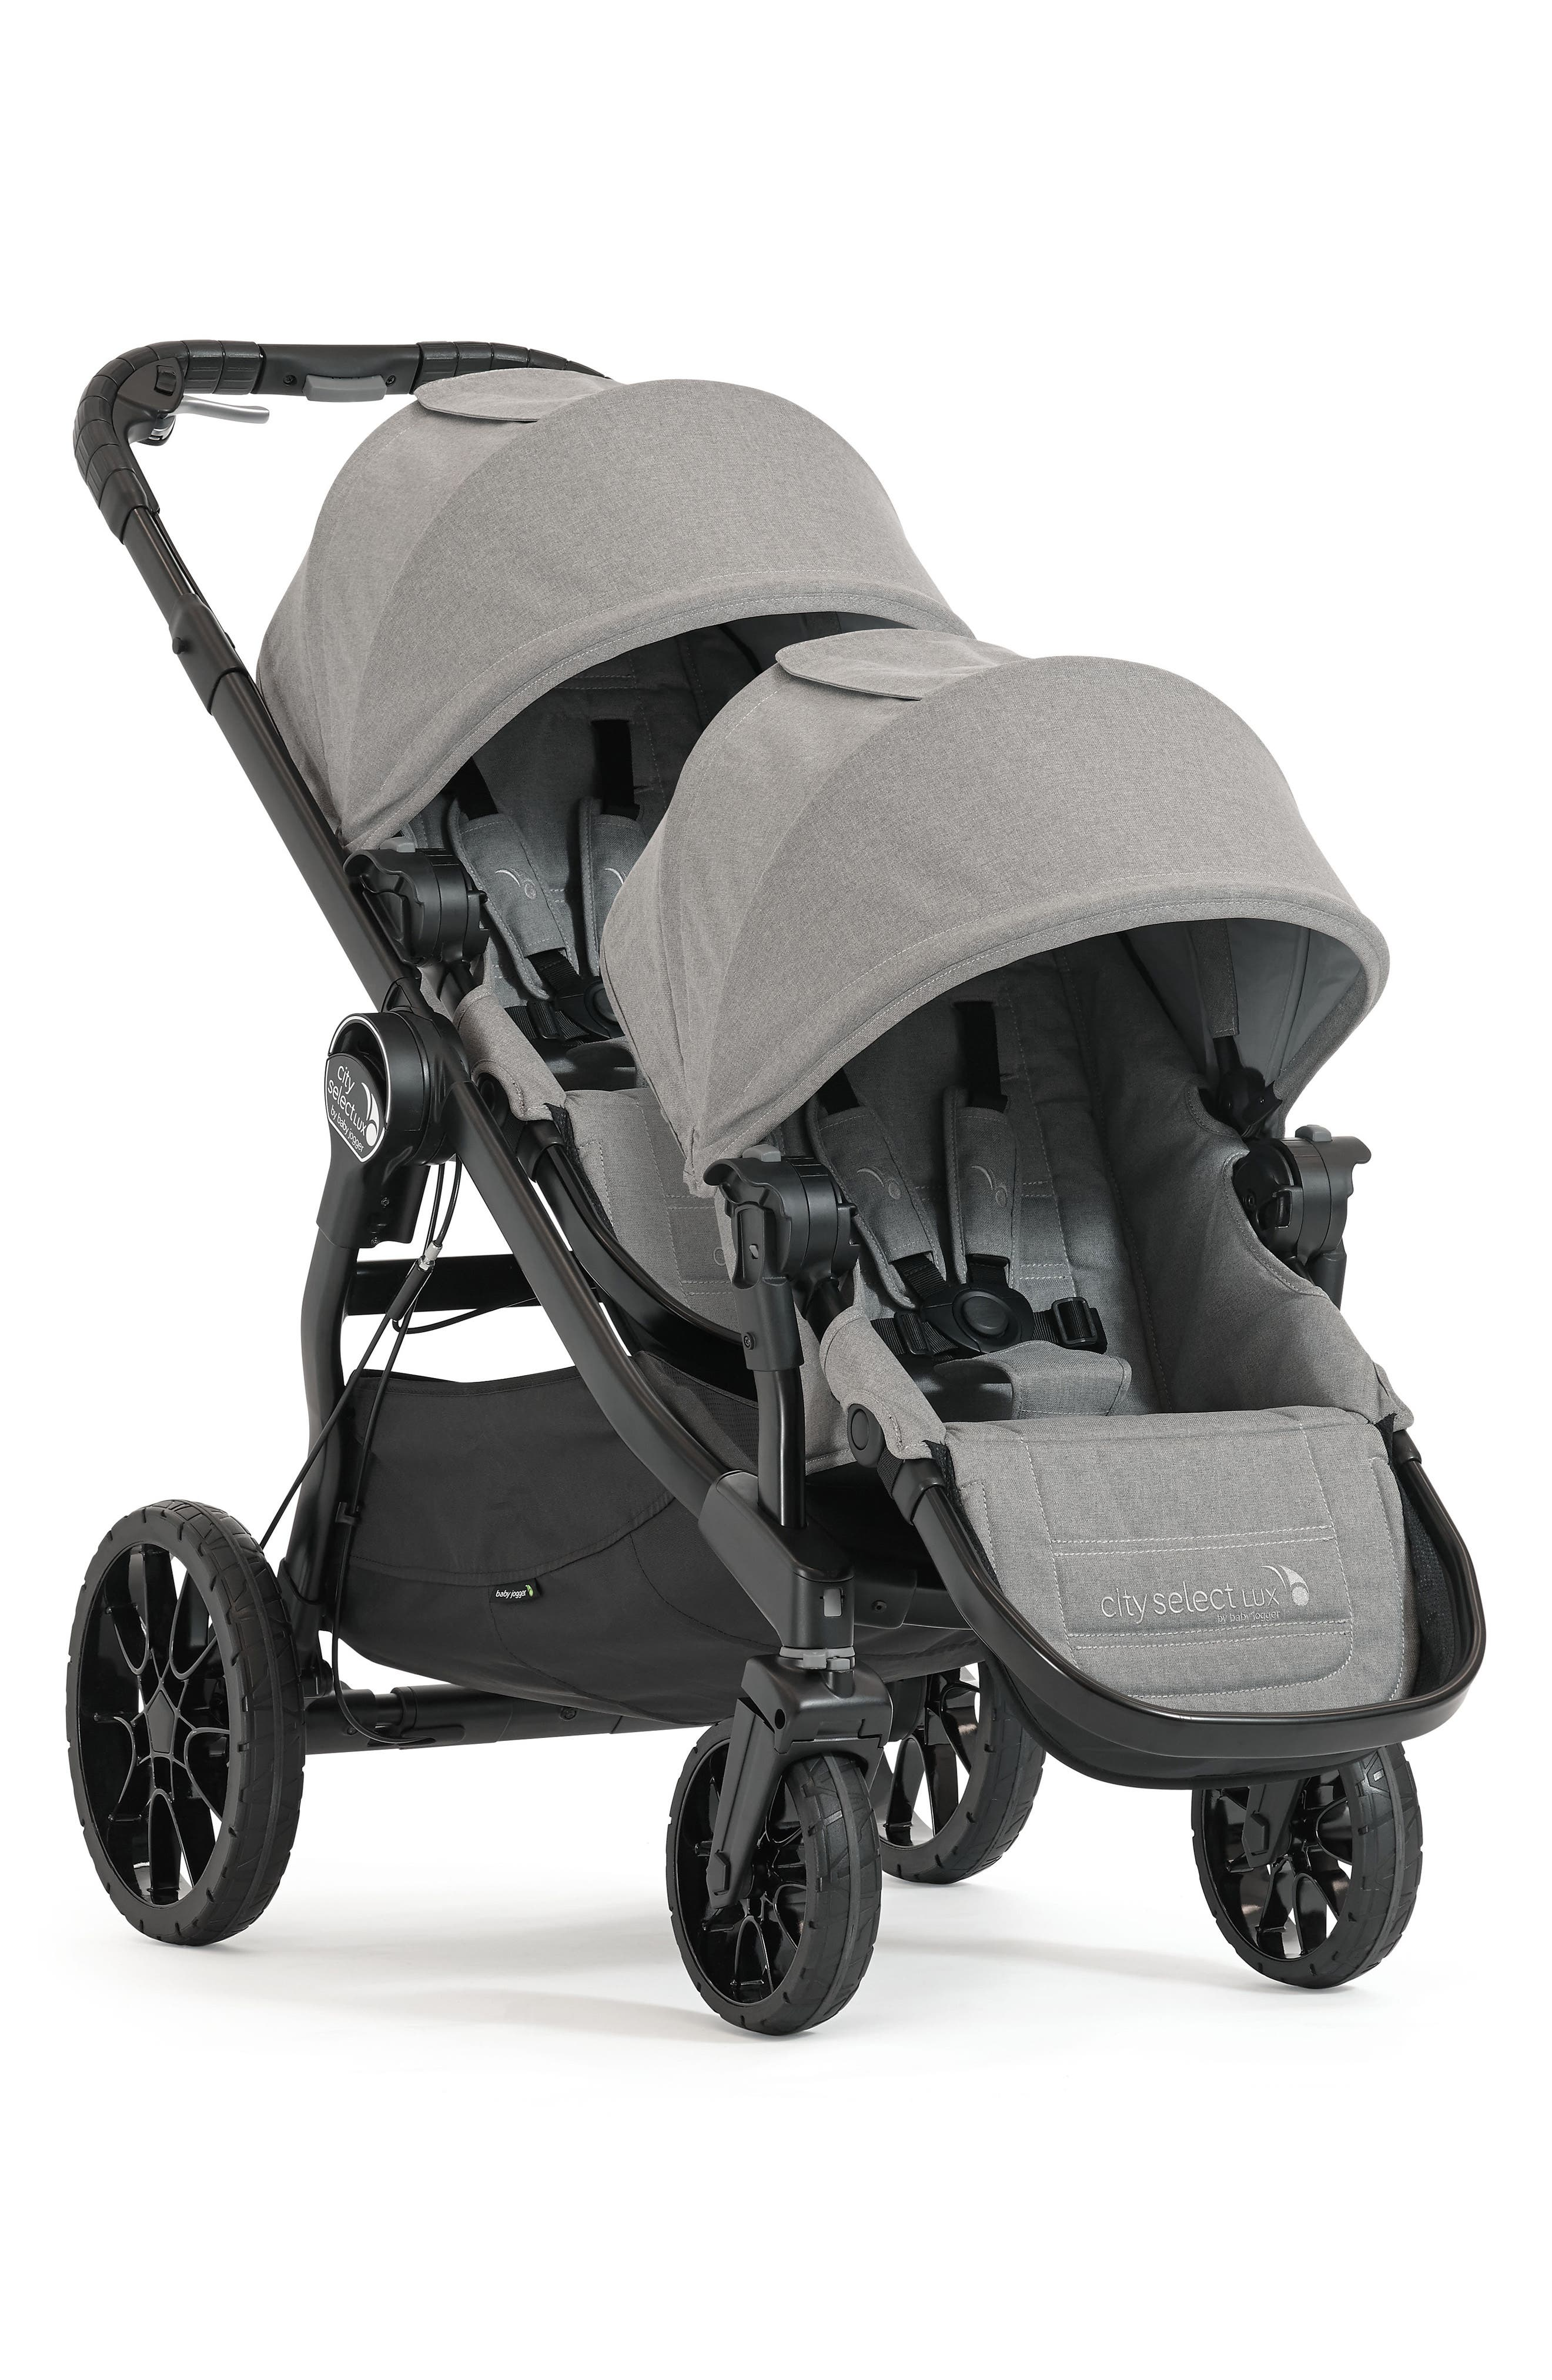 City Select<sup>®</sup> LUX Stroller with Second Seat,                             Main thumbnail 1, color,                             Slate